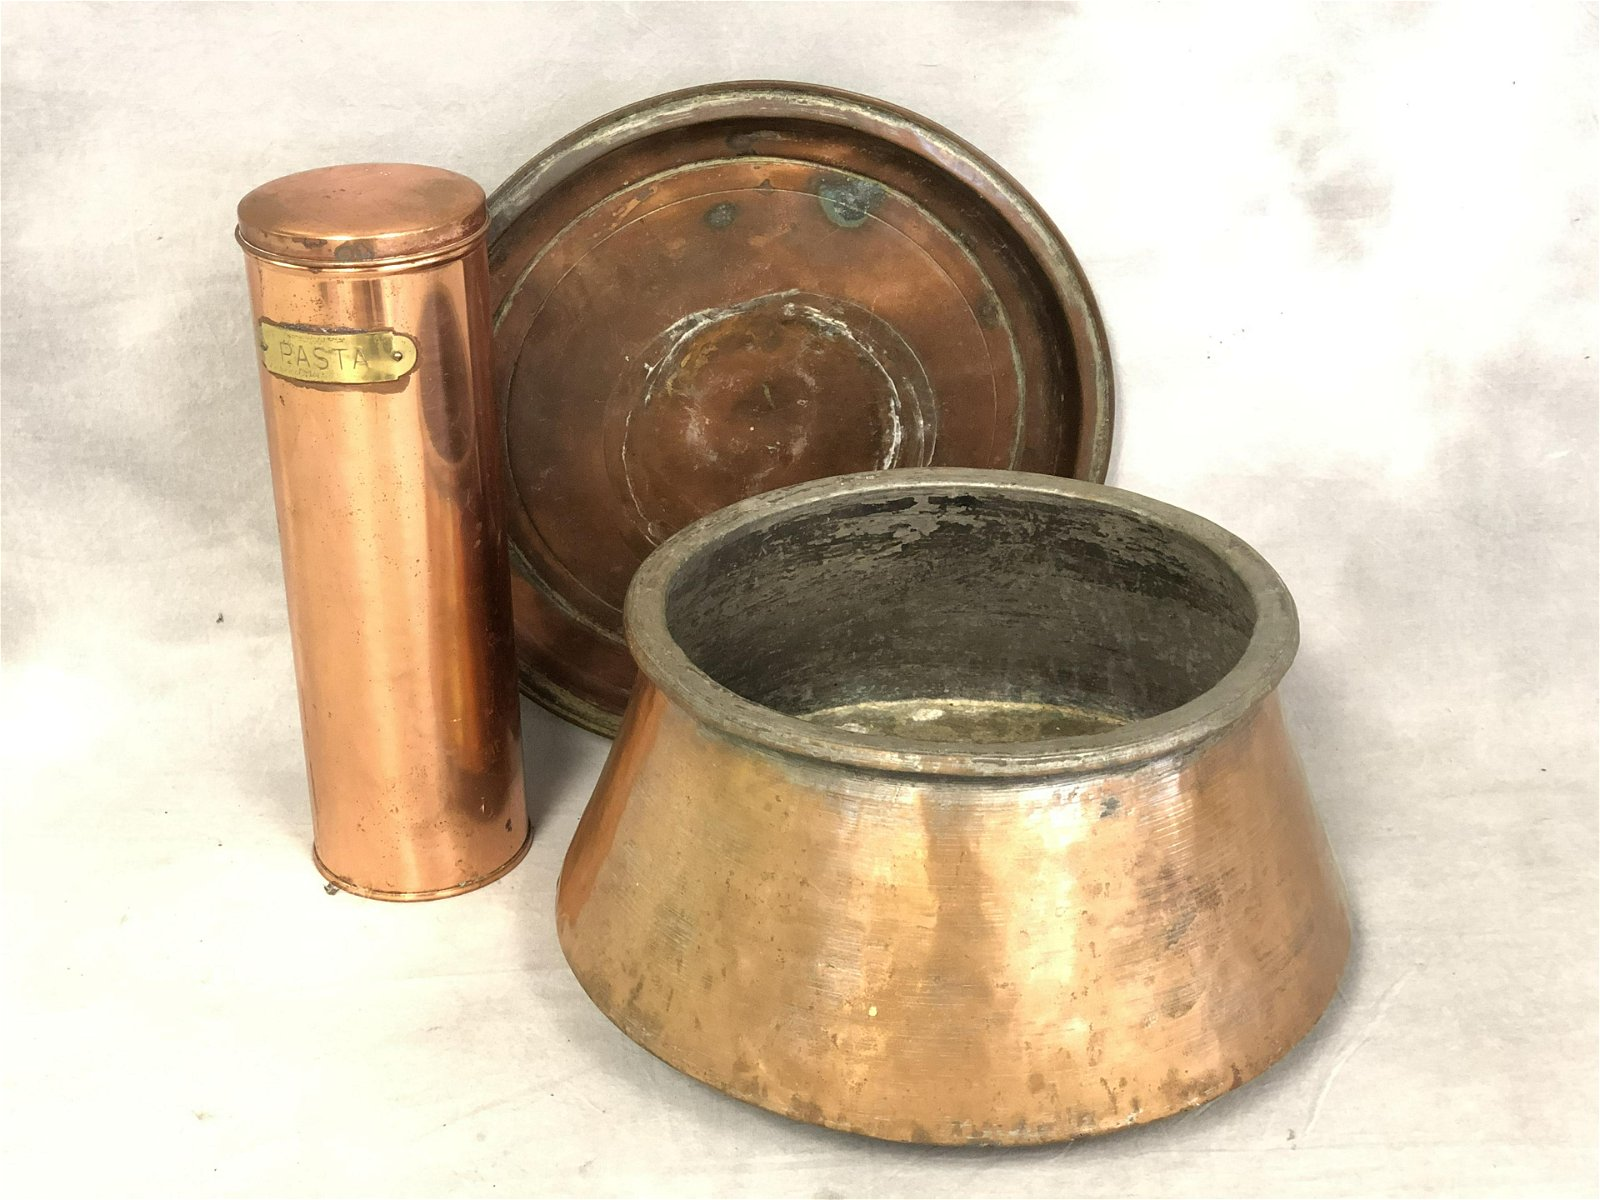 50-100 Pieces FREE Backs Holds 10mm EF141 Bronze Earring Trays Ships IMMEDIATELY from California Antique Bronze 10-20